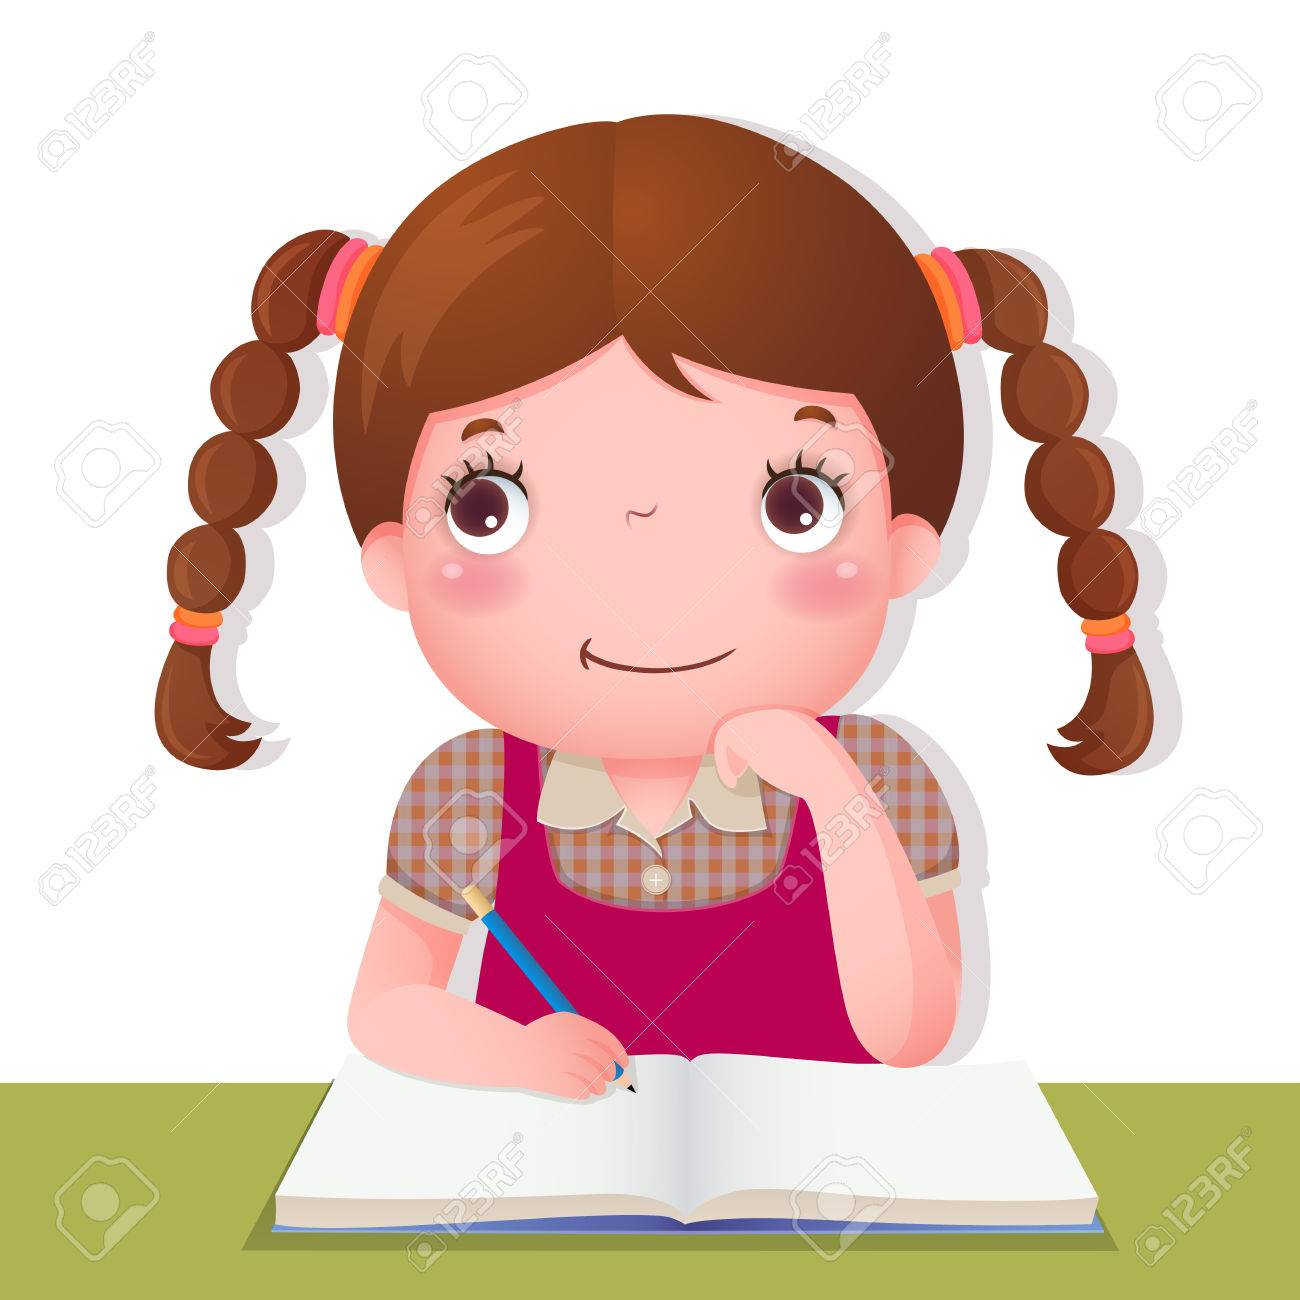 Illustration of cute girl thinking while working on her school...